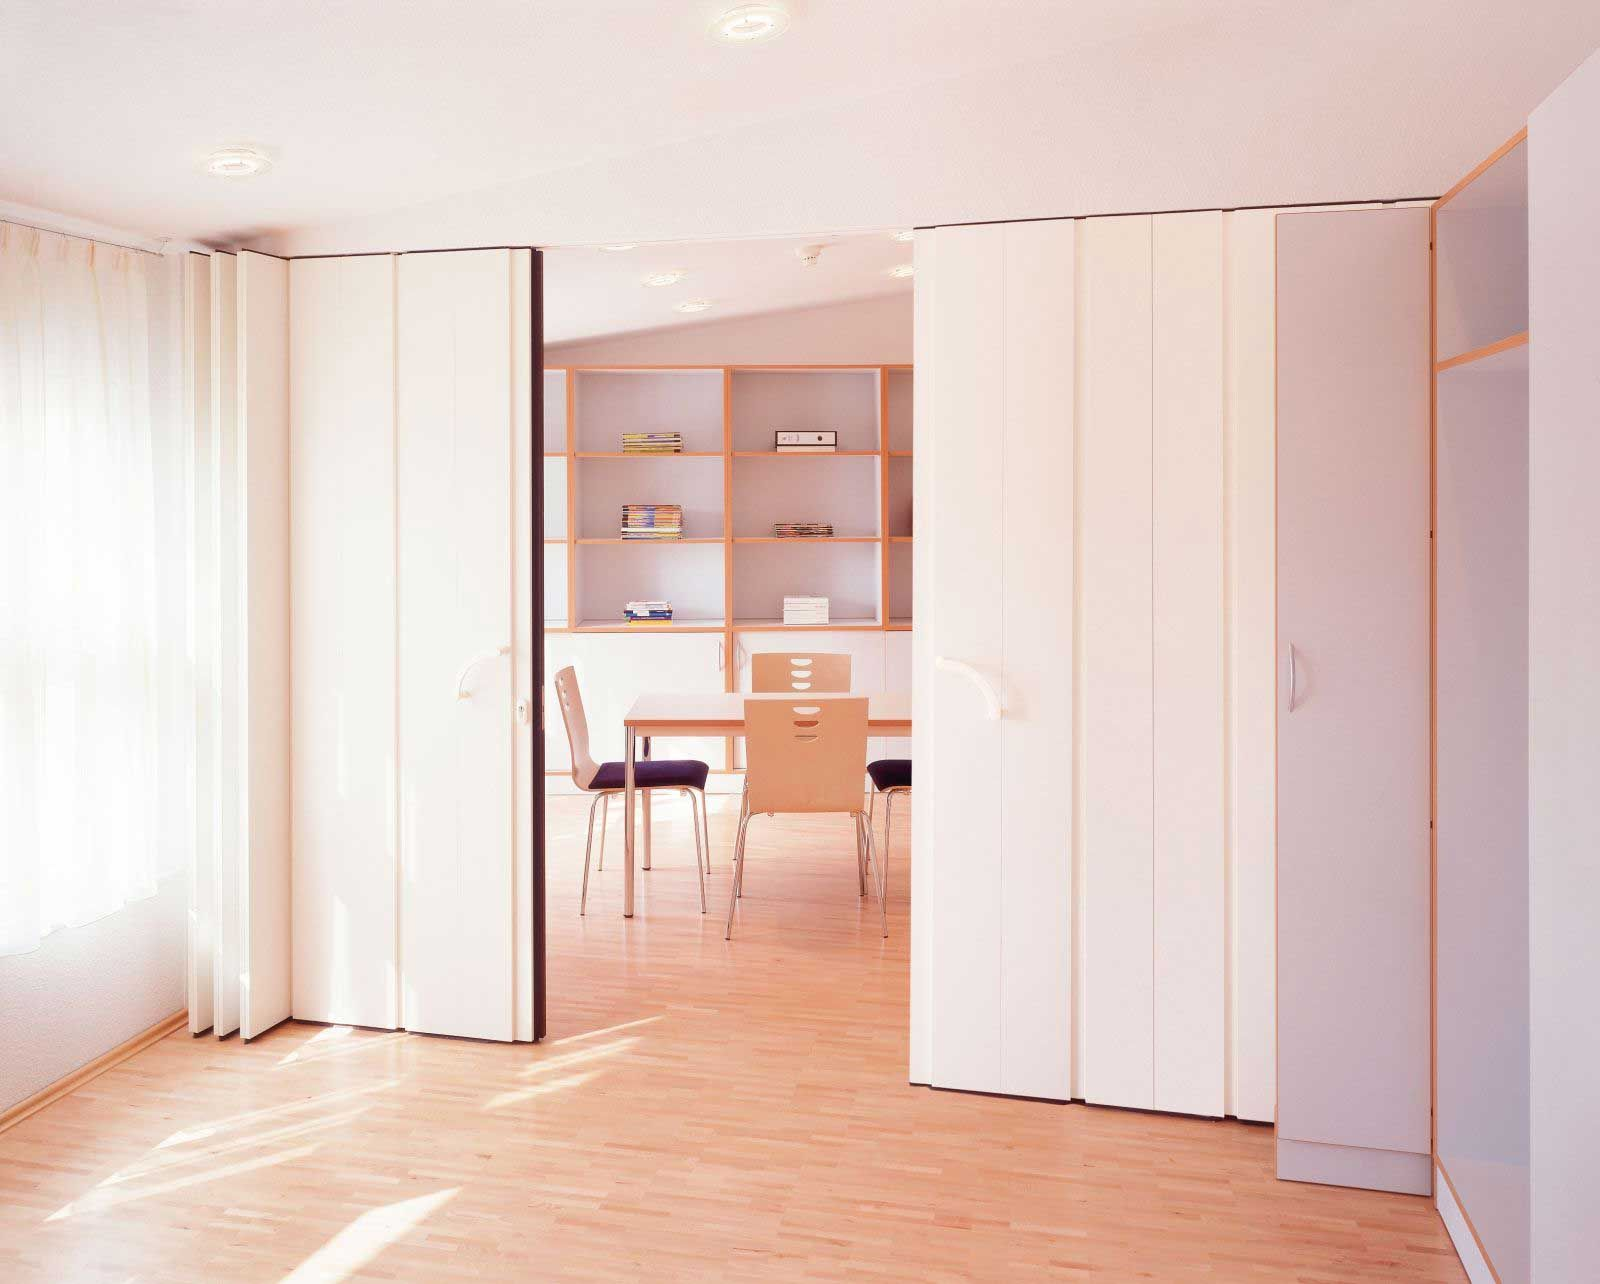 Dorma Variplan Movable Wall Partitions